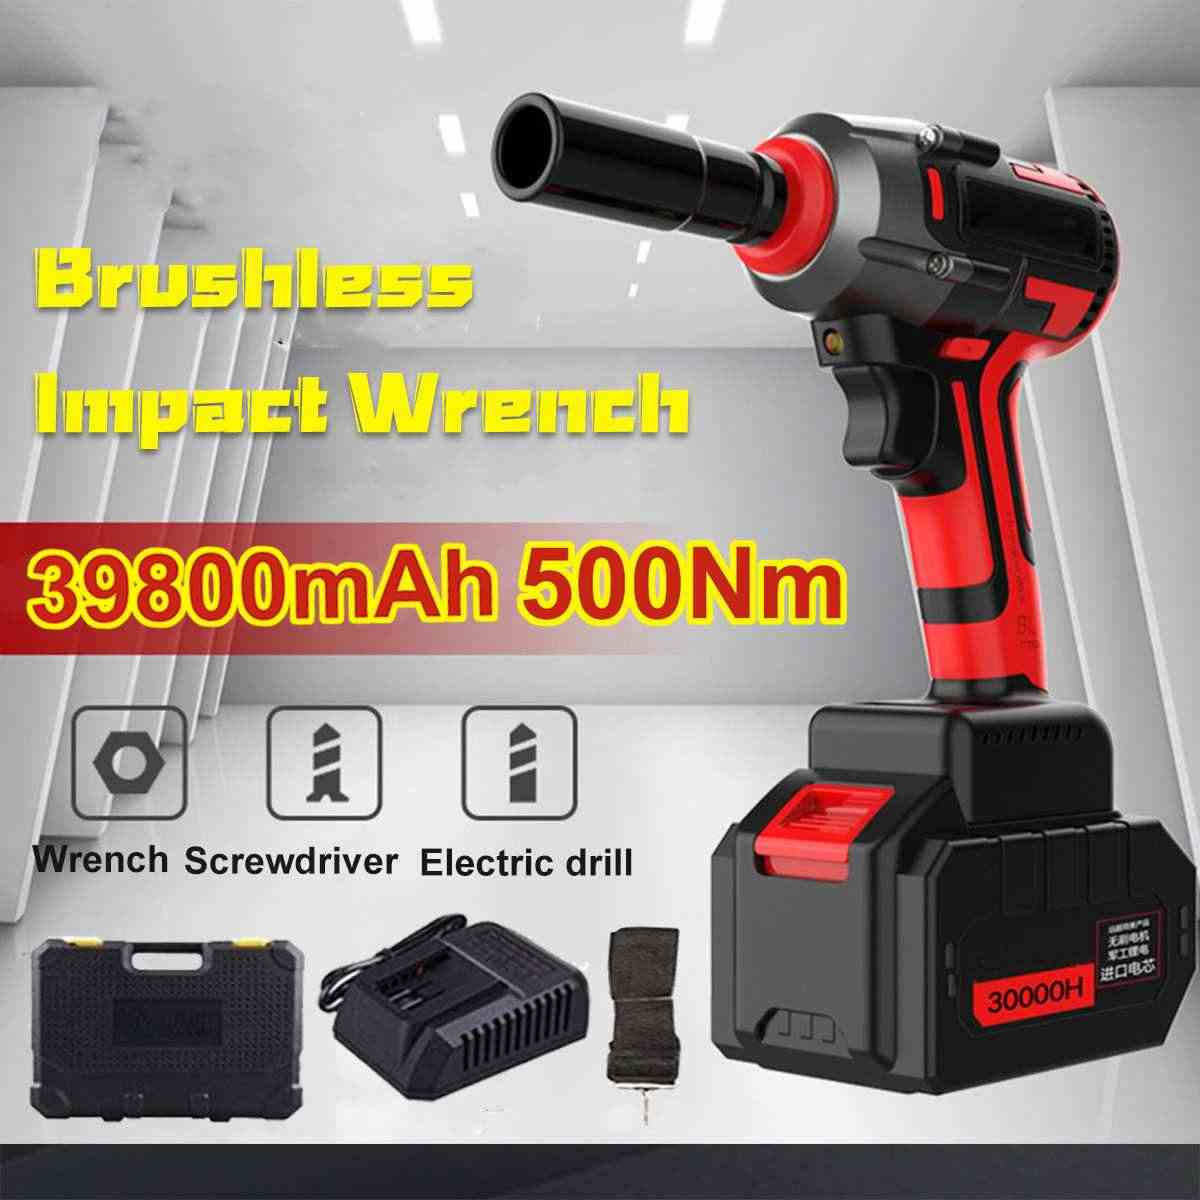 New Wrench Electric Torque Wrench Impact Socket Wrench 39800mAh 500 N.m Torque Impact Wrench 220v Brushless Car Electric Tools